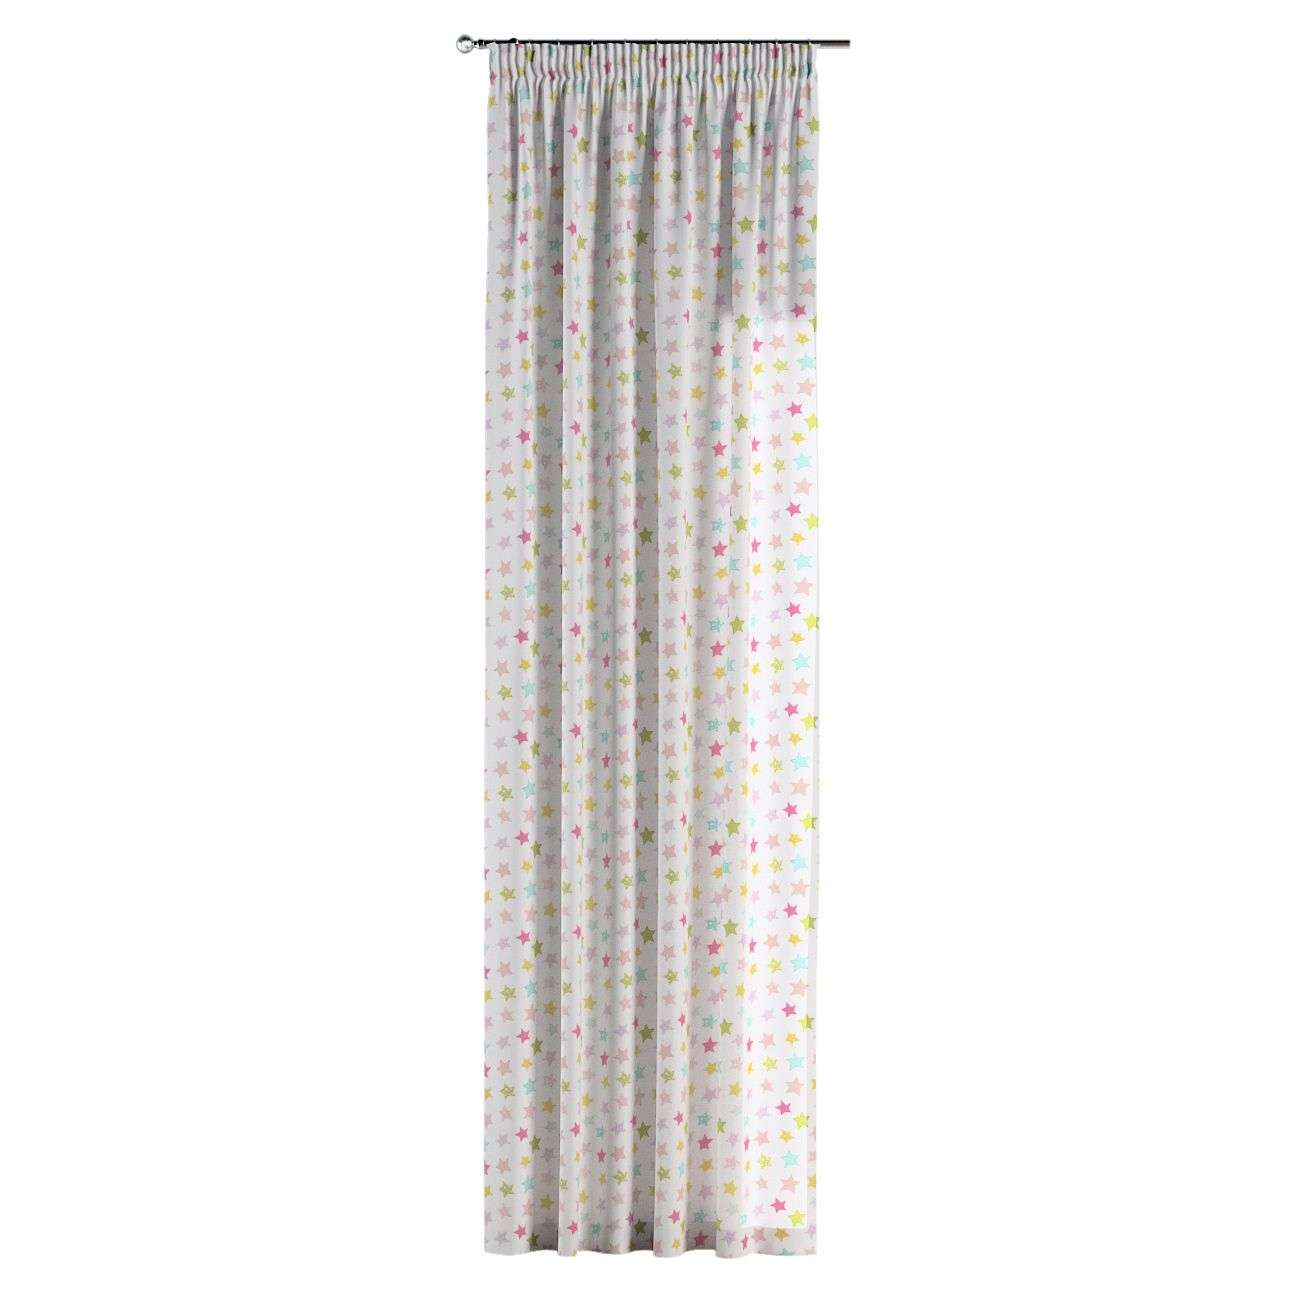 Pencil pleat curtains 130 x 260 cm (51 x 102 inch) in collection Little World, fabric: 141-52